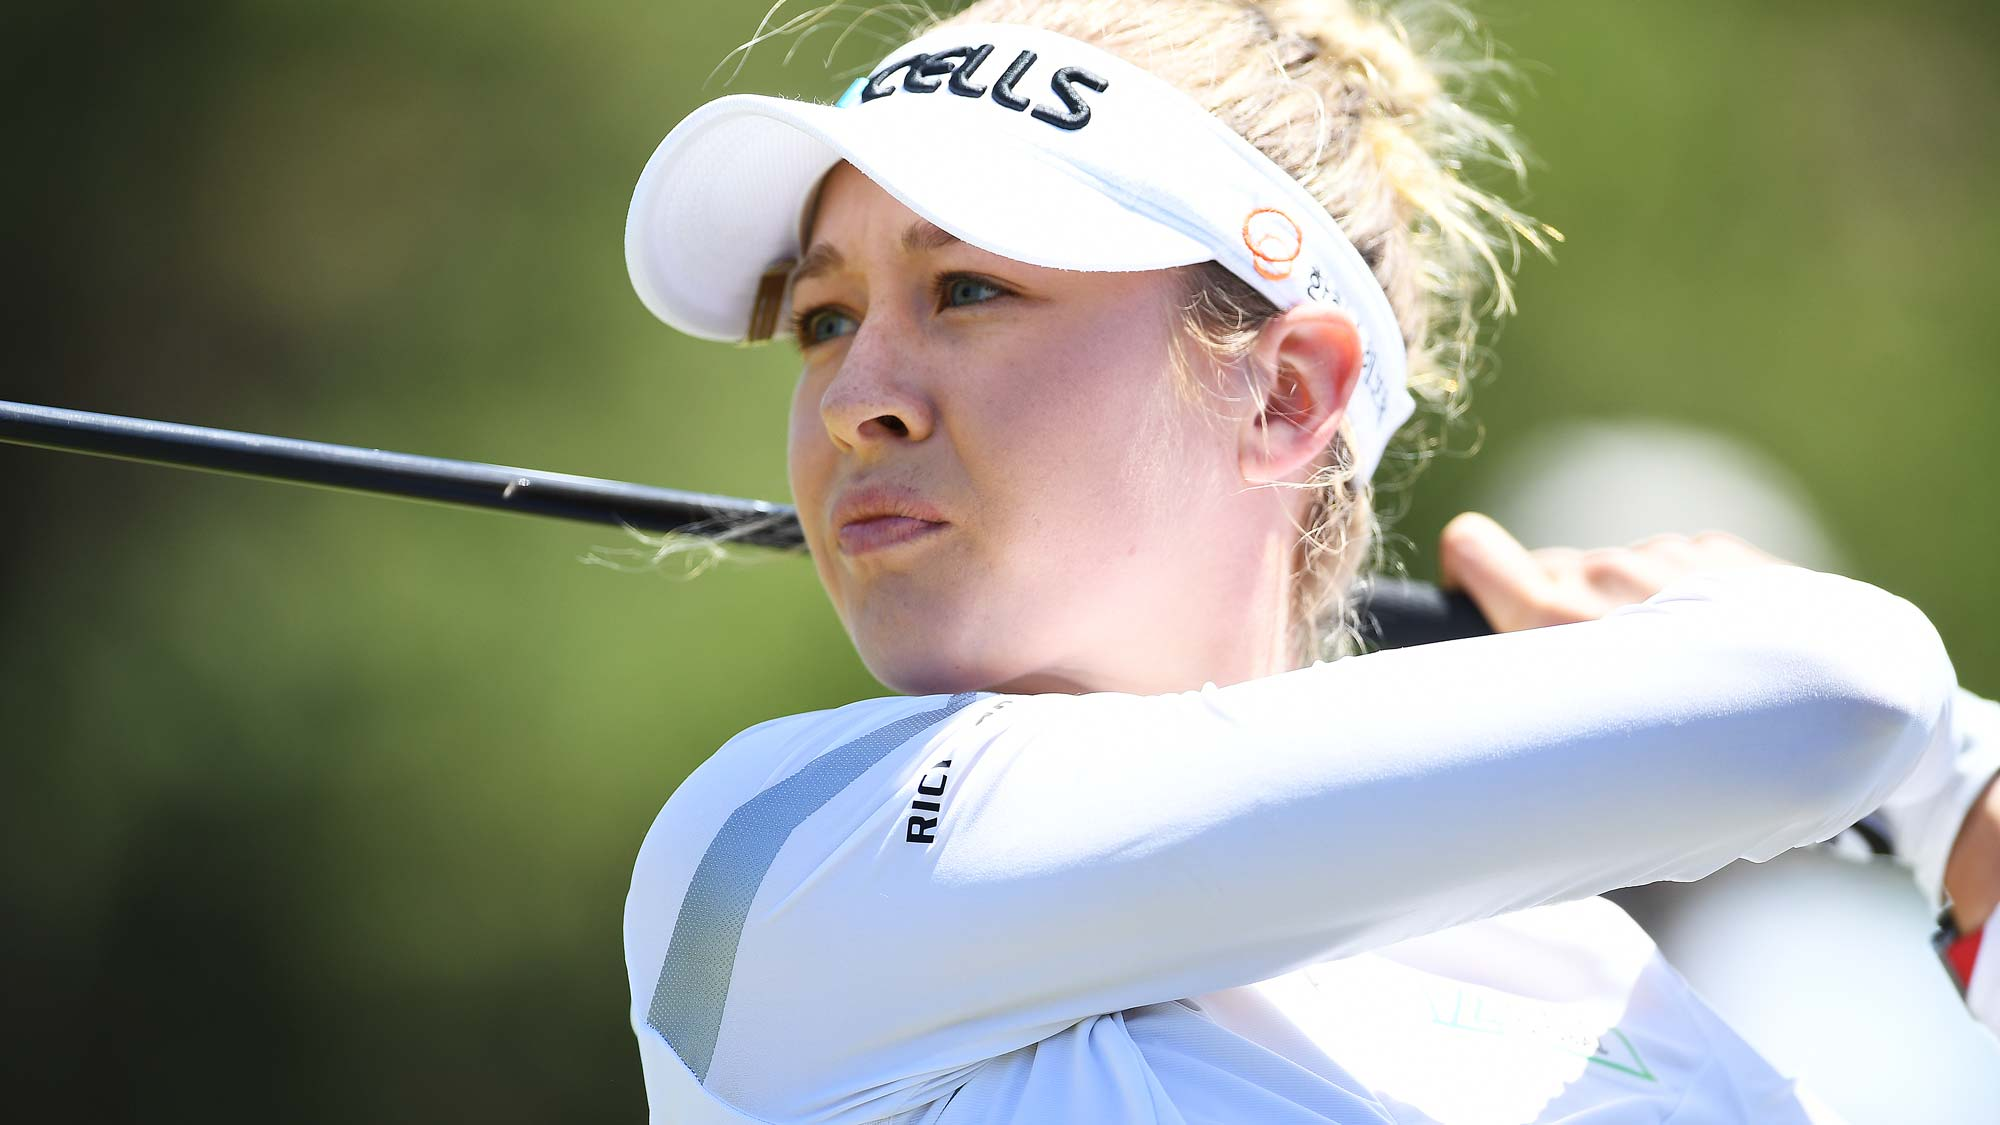 Nelly Korda of the USA drives during day one of the 2019 ISPS Handa Women's Australian Open